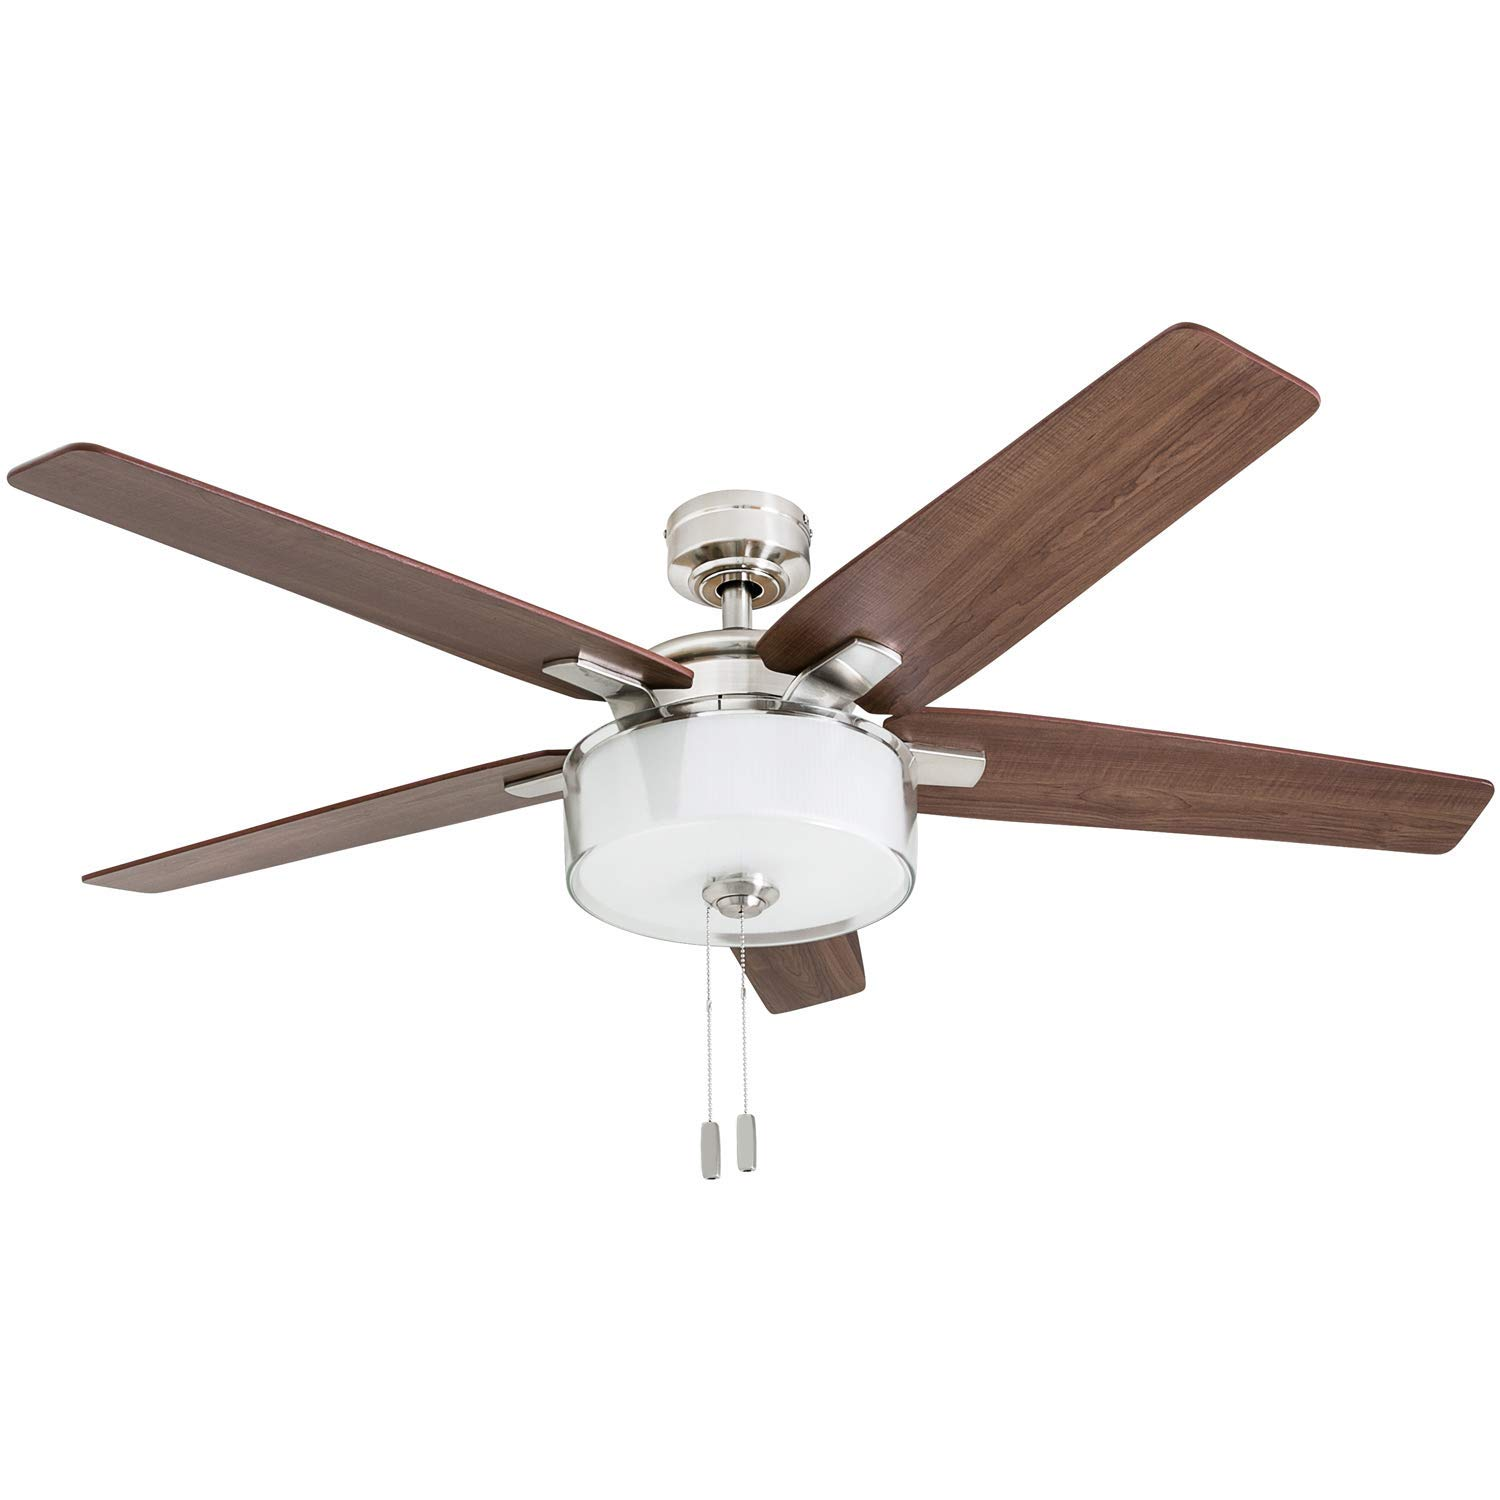 Prominence Home 50880-01 Cicero Contemporary Ceiling Fan, 52 , LED Drum Shade Glass Light Fixture, Brushed Nickel